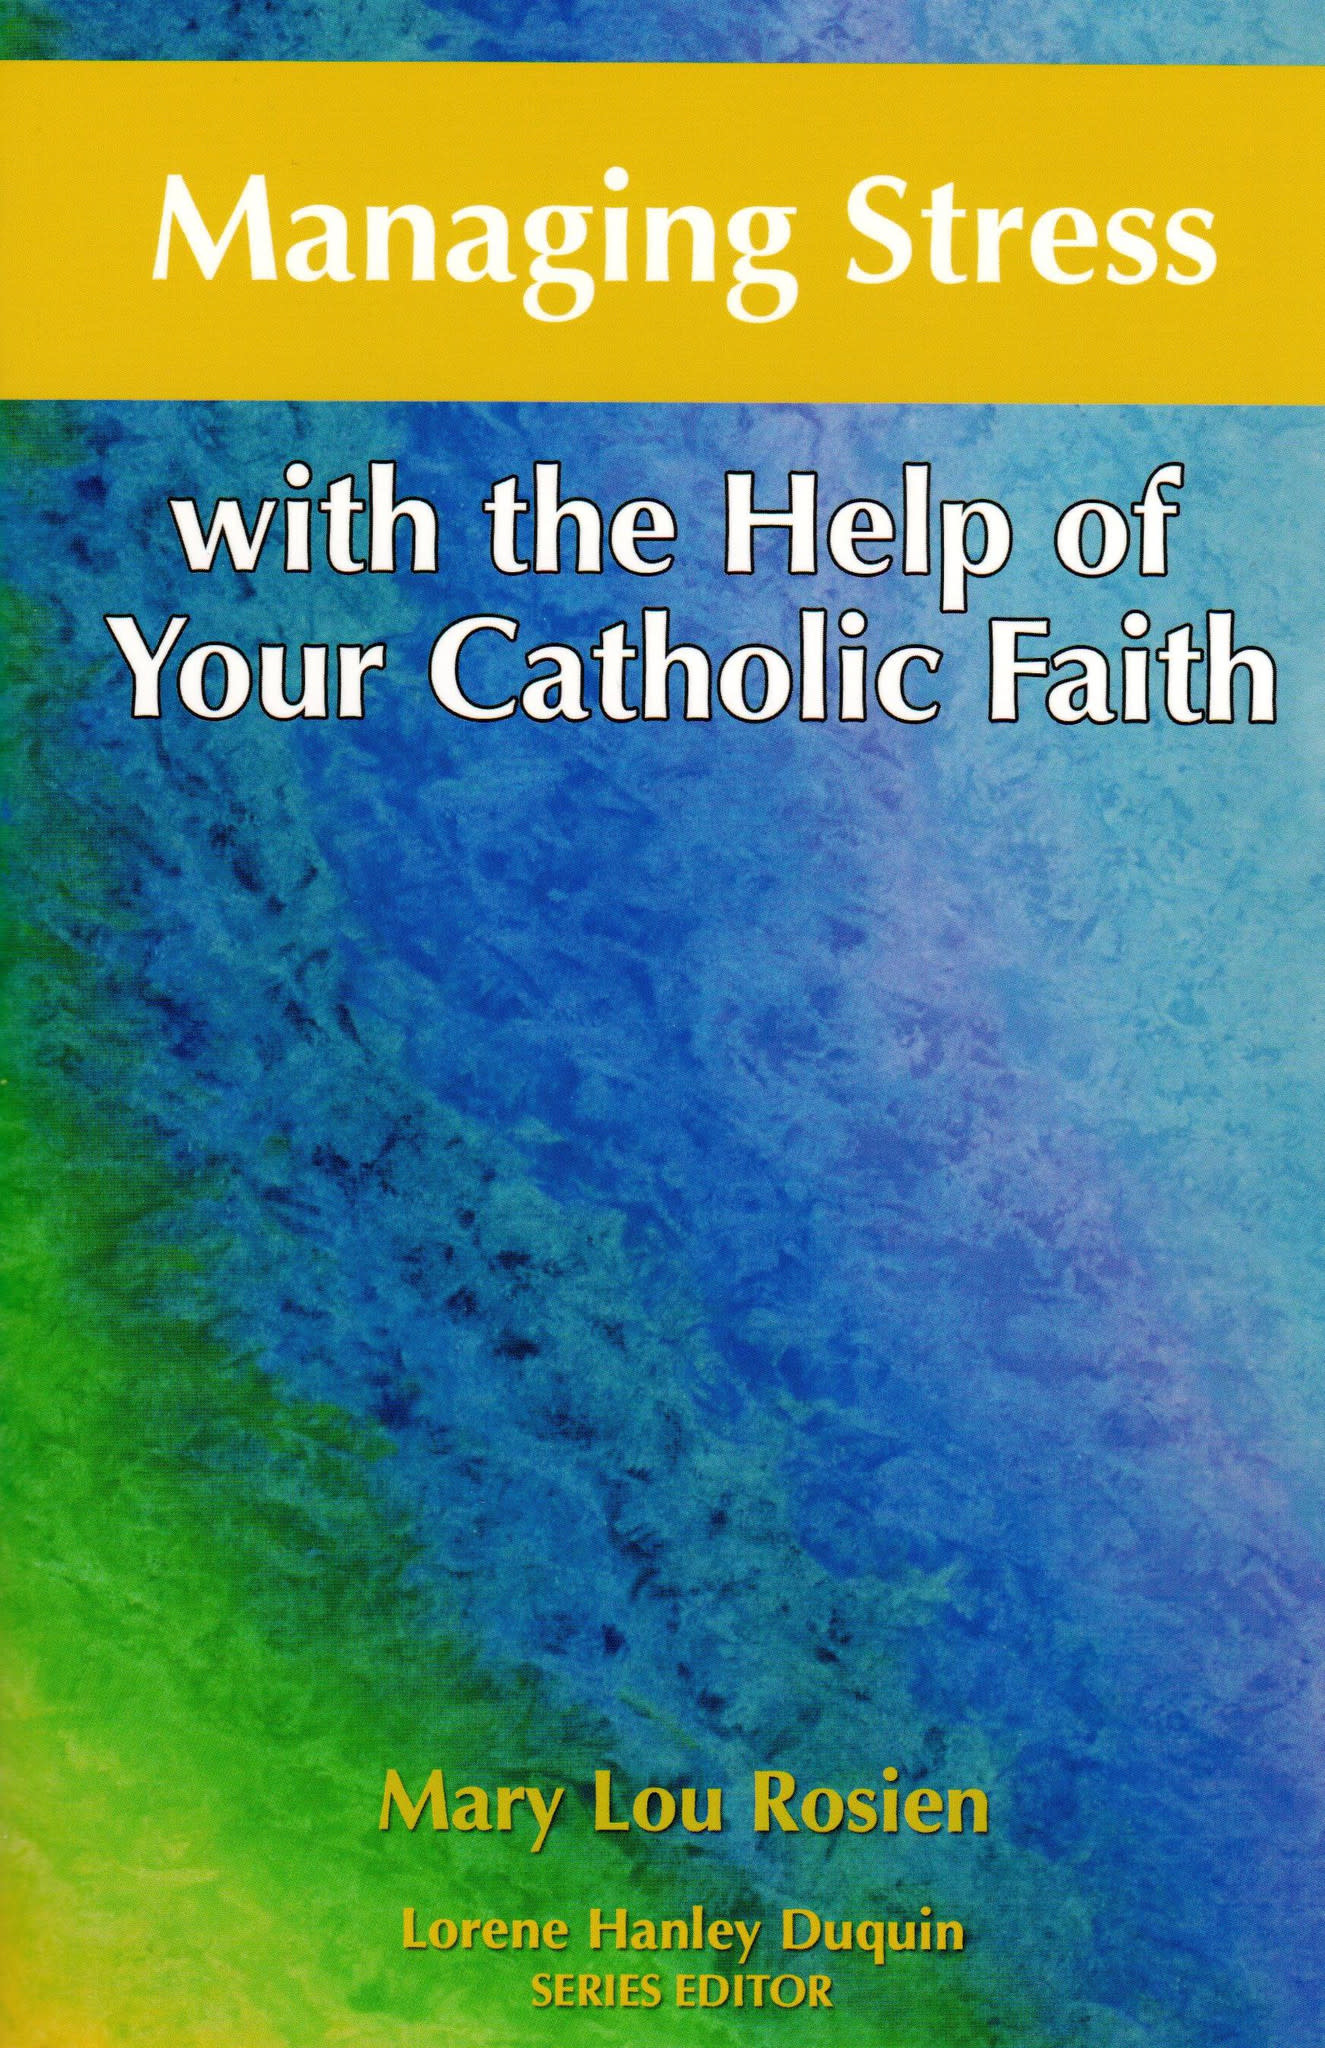 Managing Stress with the Help of Your Catholic Faith